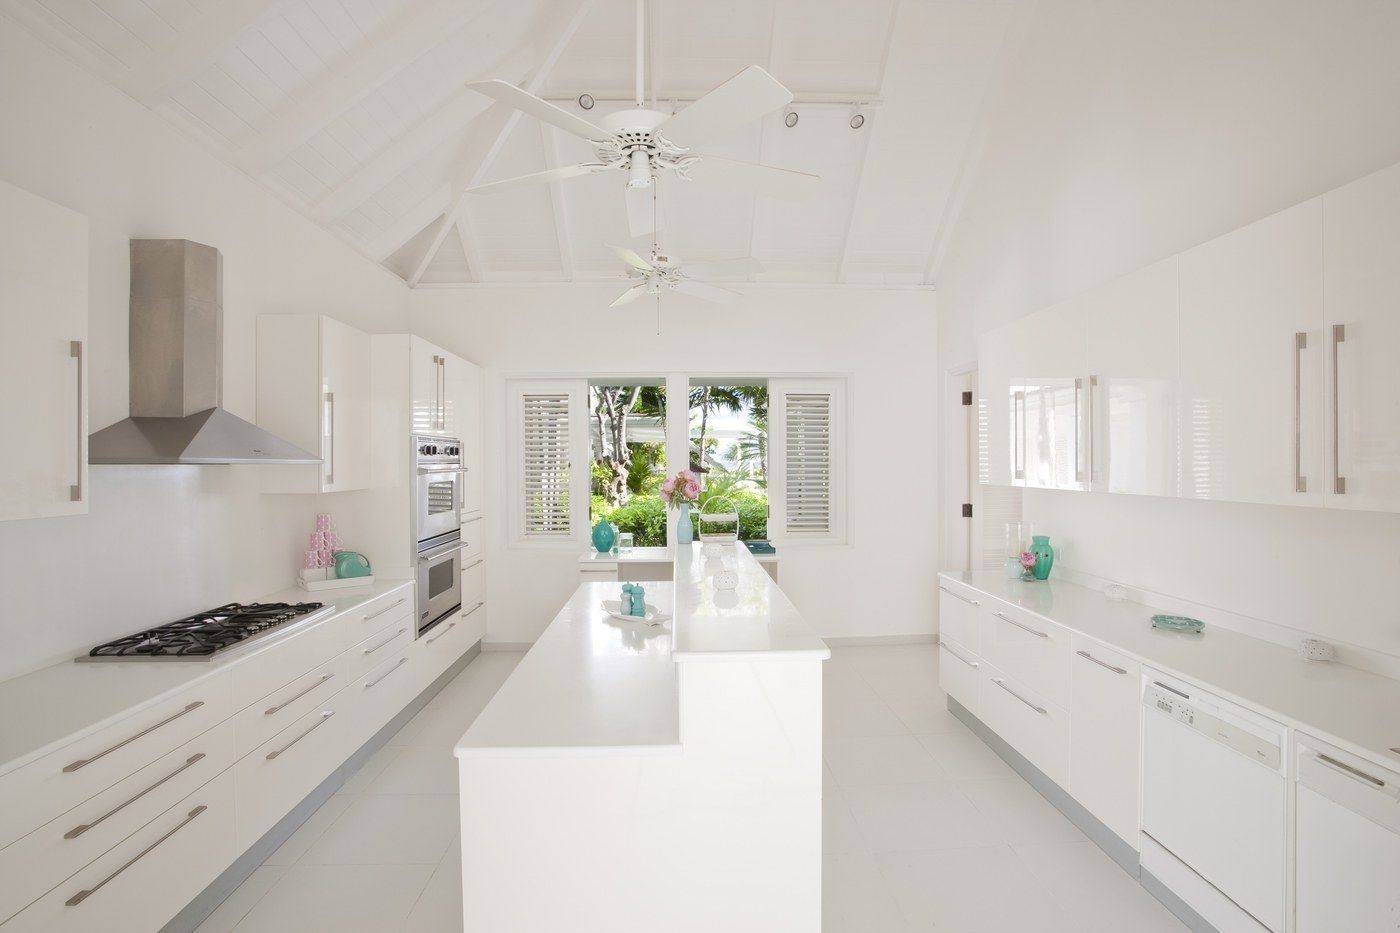 The cool all-white kitchen pulls all focus towards the tropical setting outside